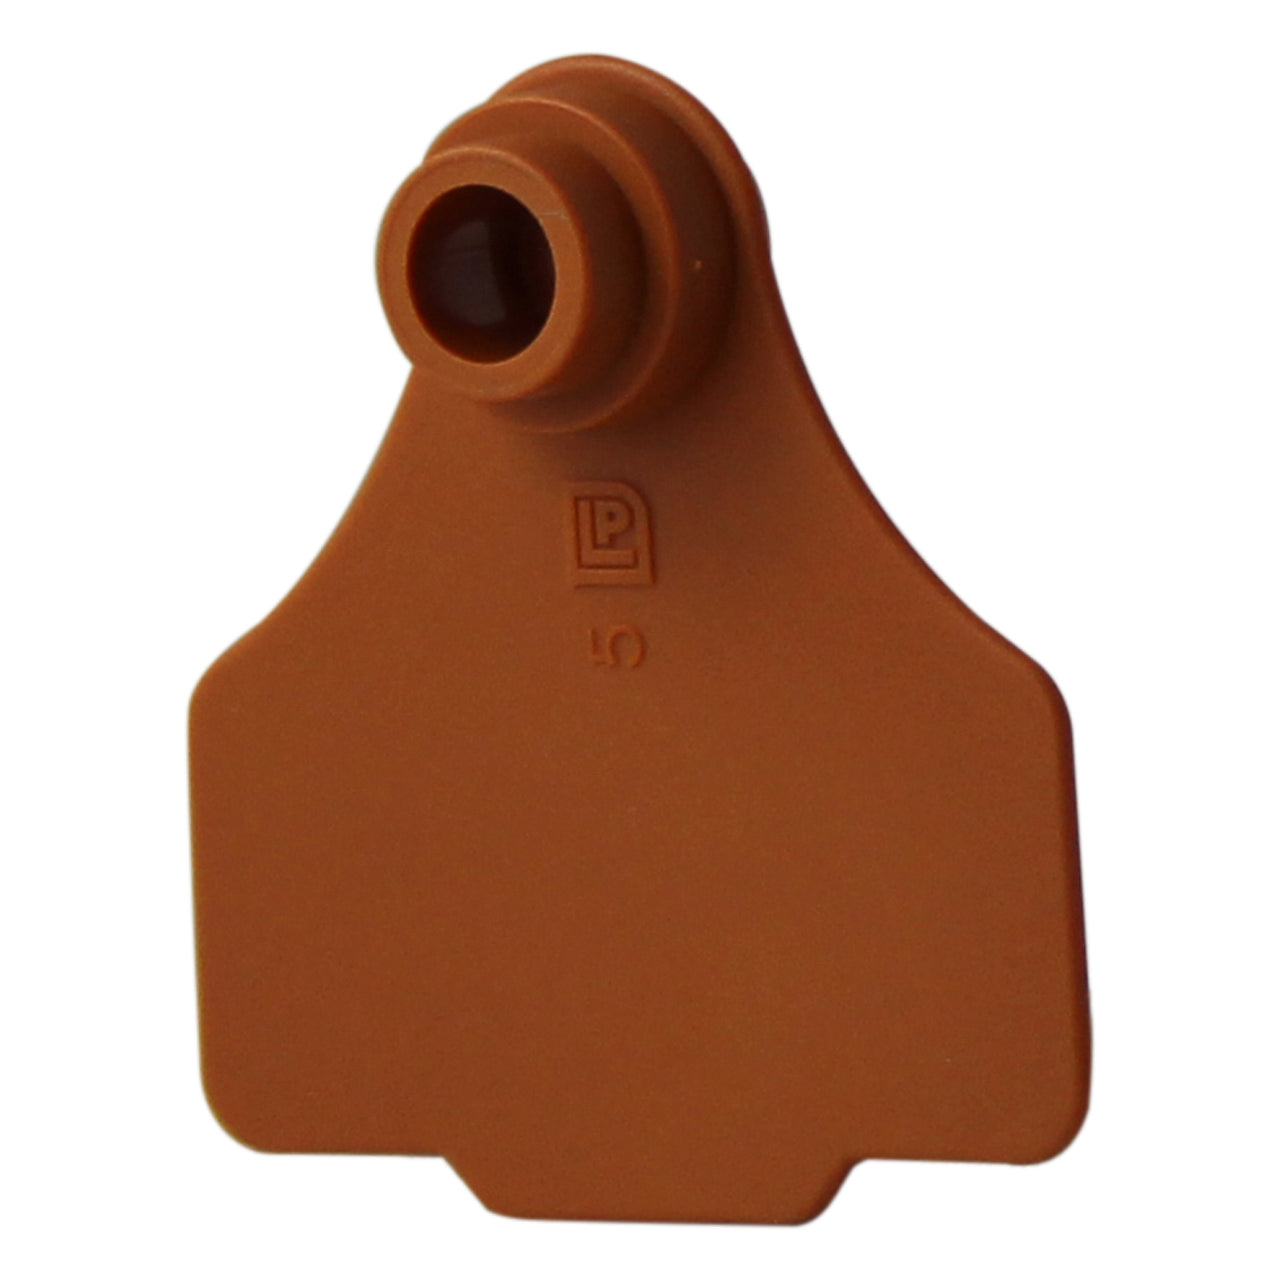 Medium 2Pc Brown - 25S - Brown - Ear Tags Leader Products - Canada